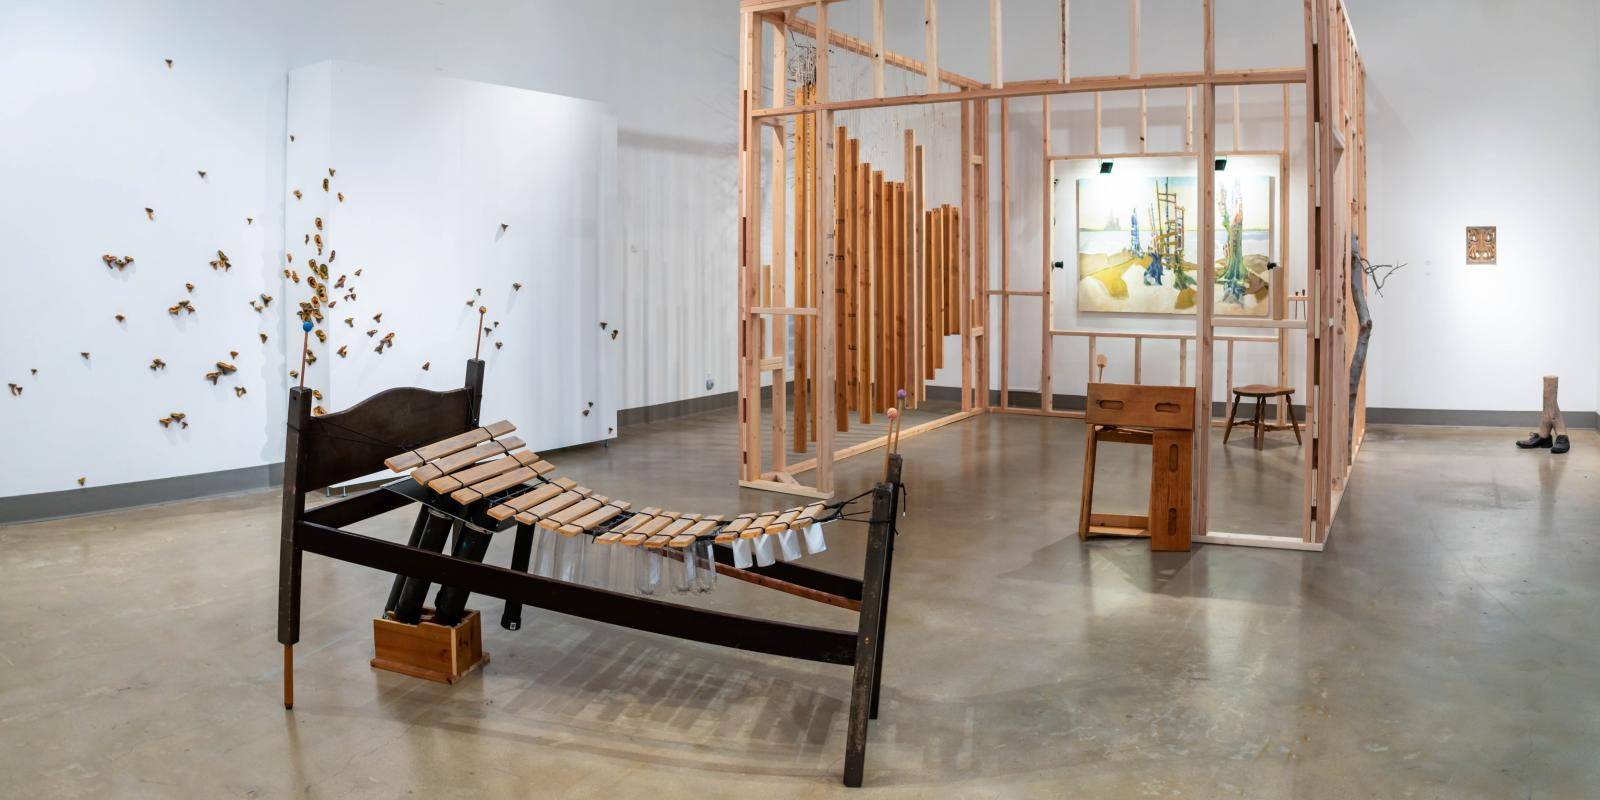 Current 2020 Exhibition - St. Broxville Wood: Into the Thicket